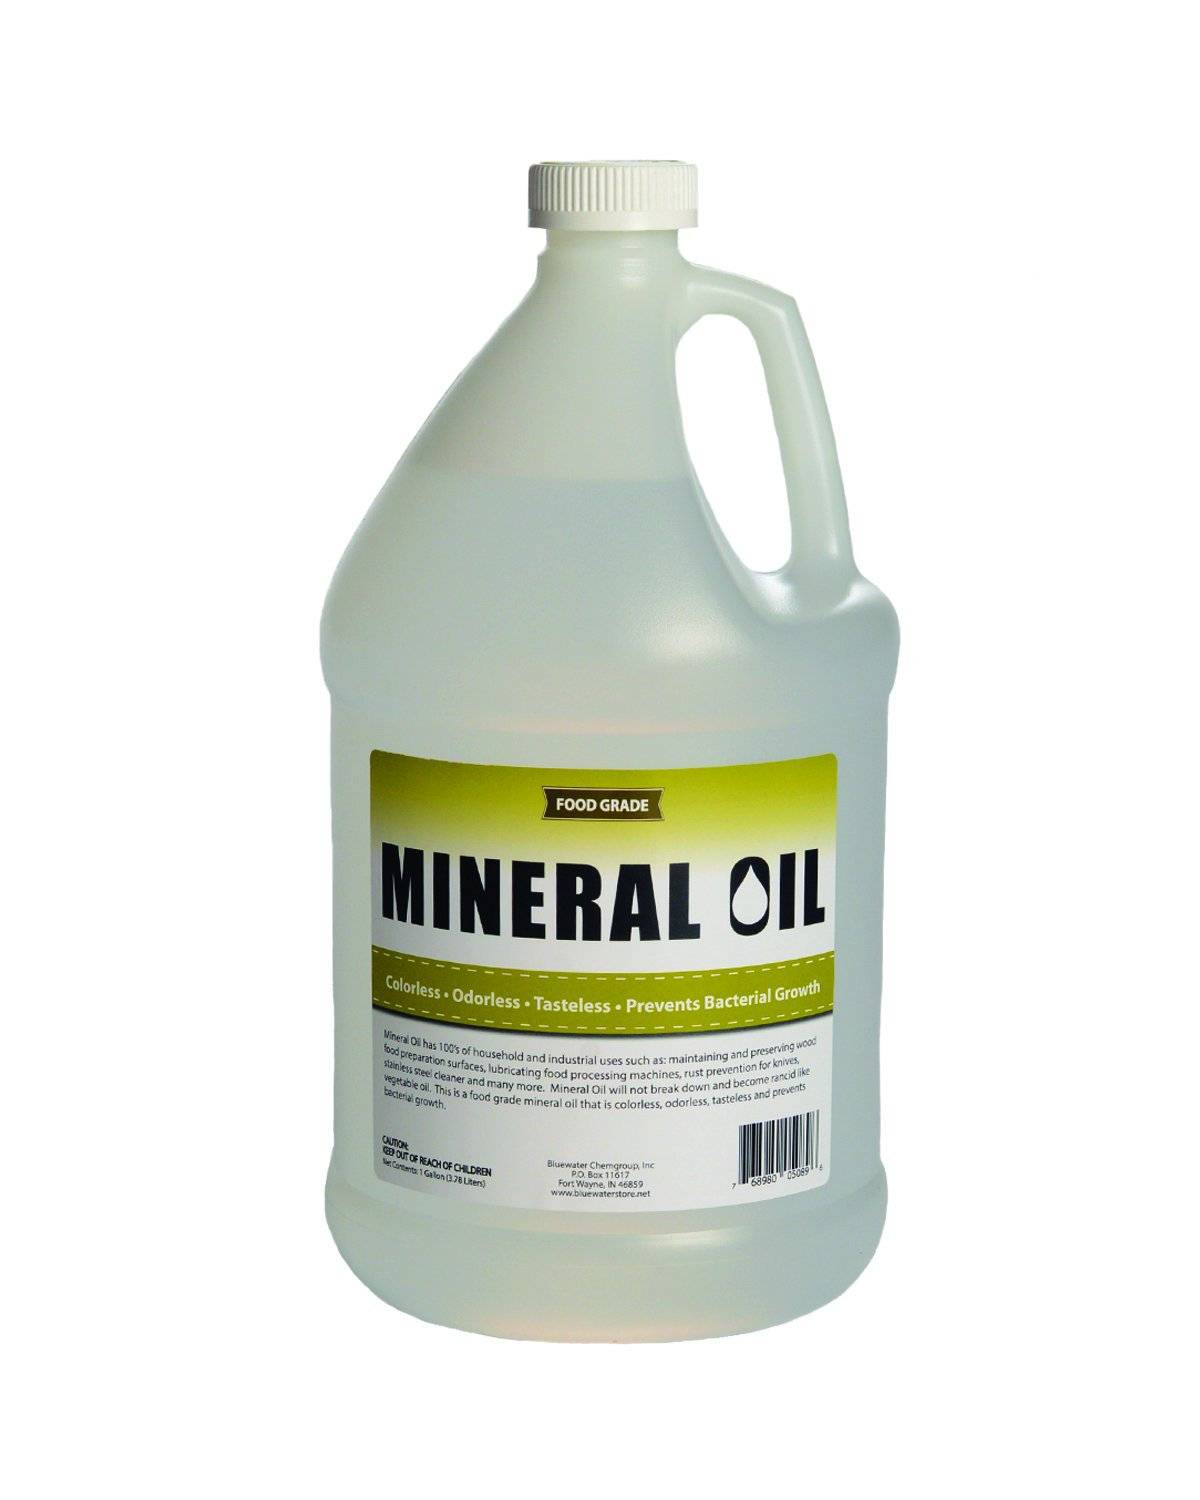 Mineral Oil Reviews Mineral Oil Reviews new foto